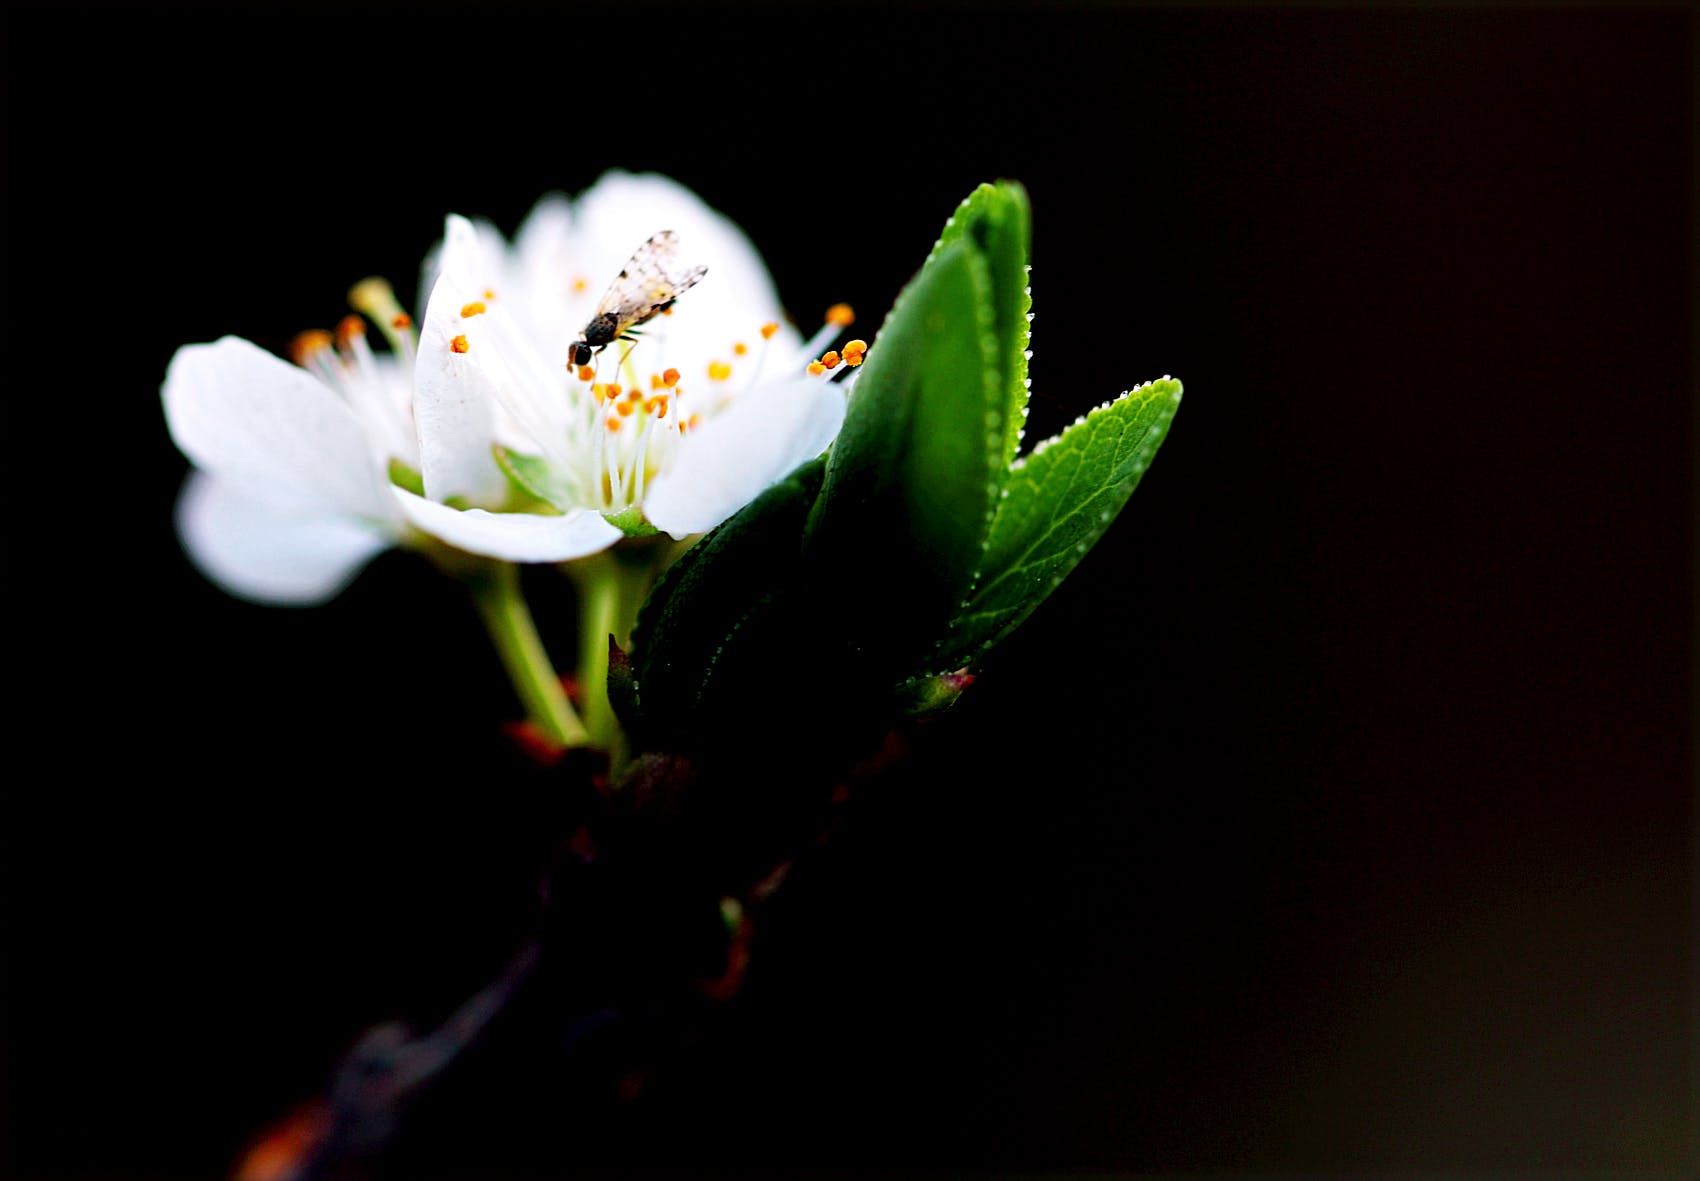 Macro Shot Photography of White Flower